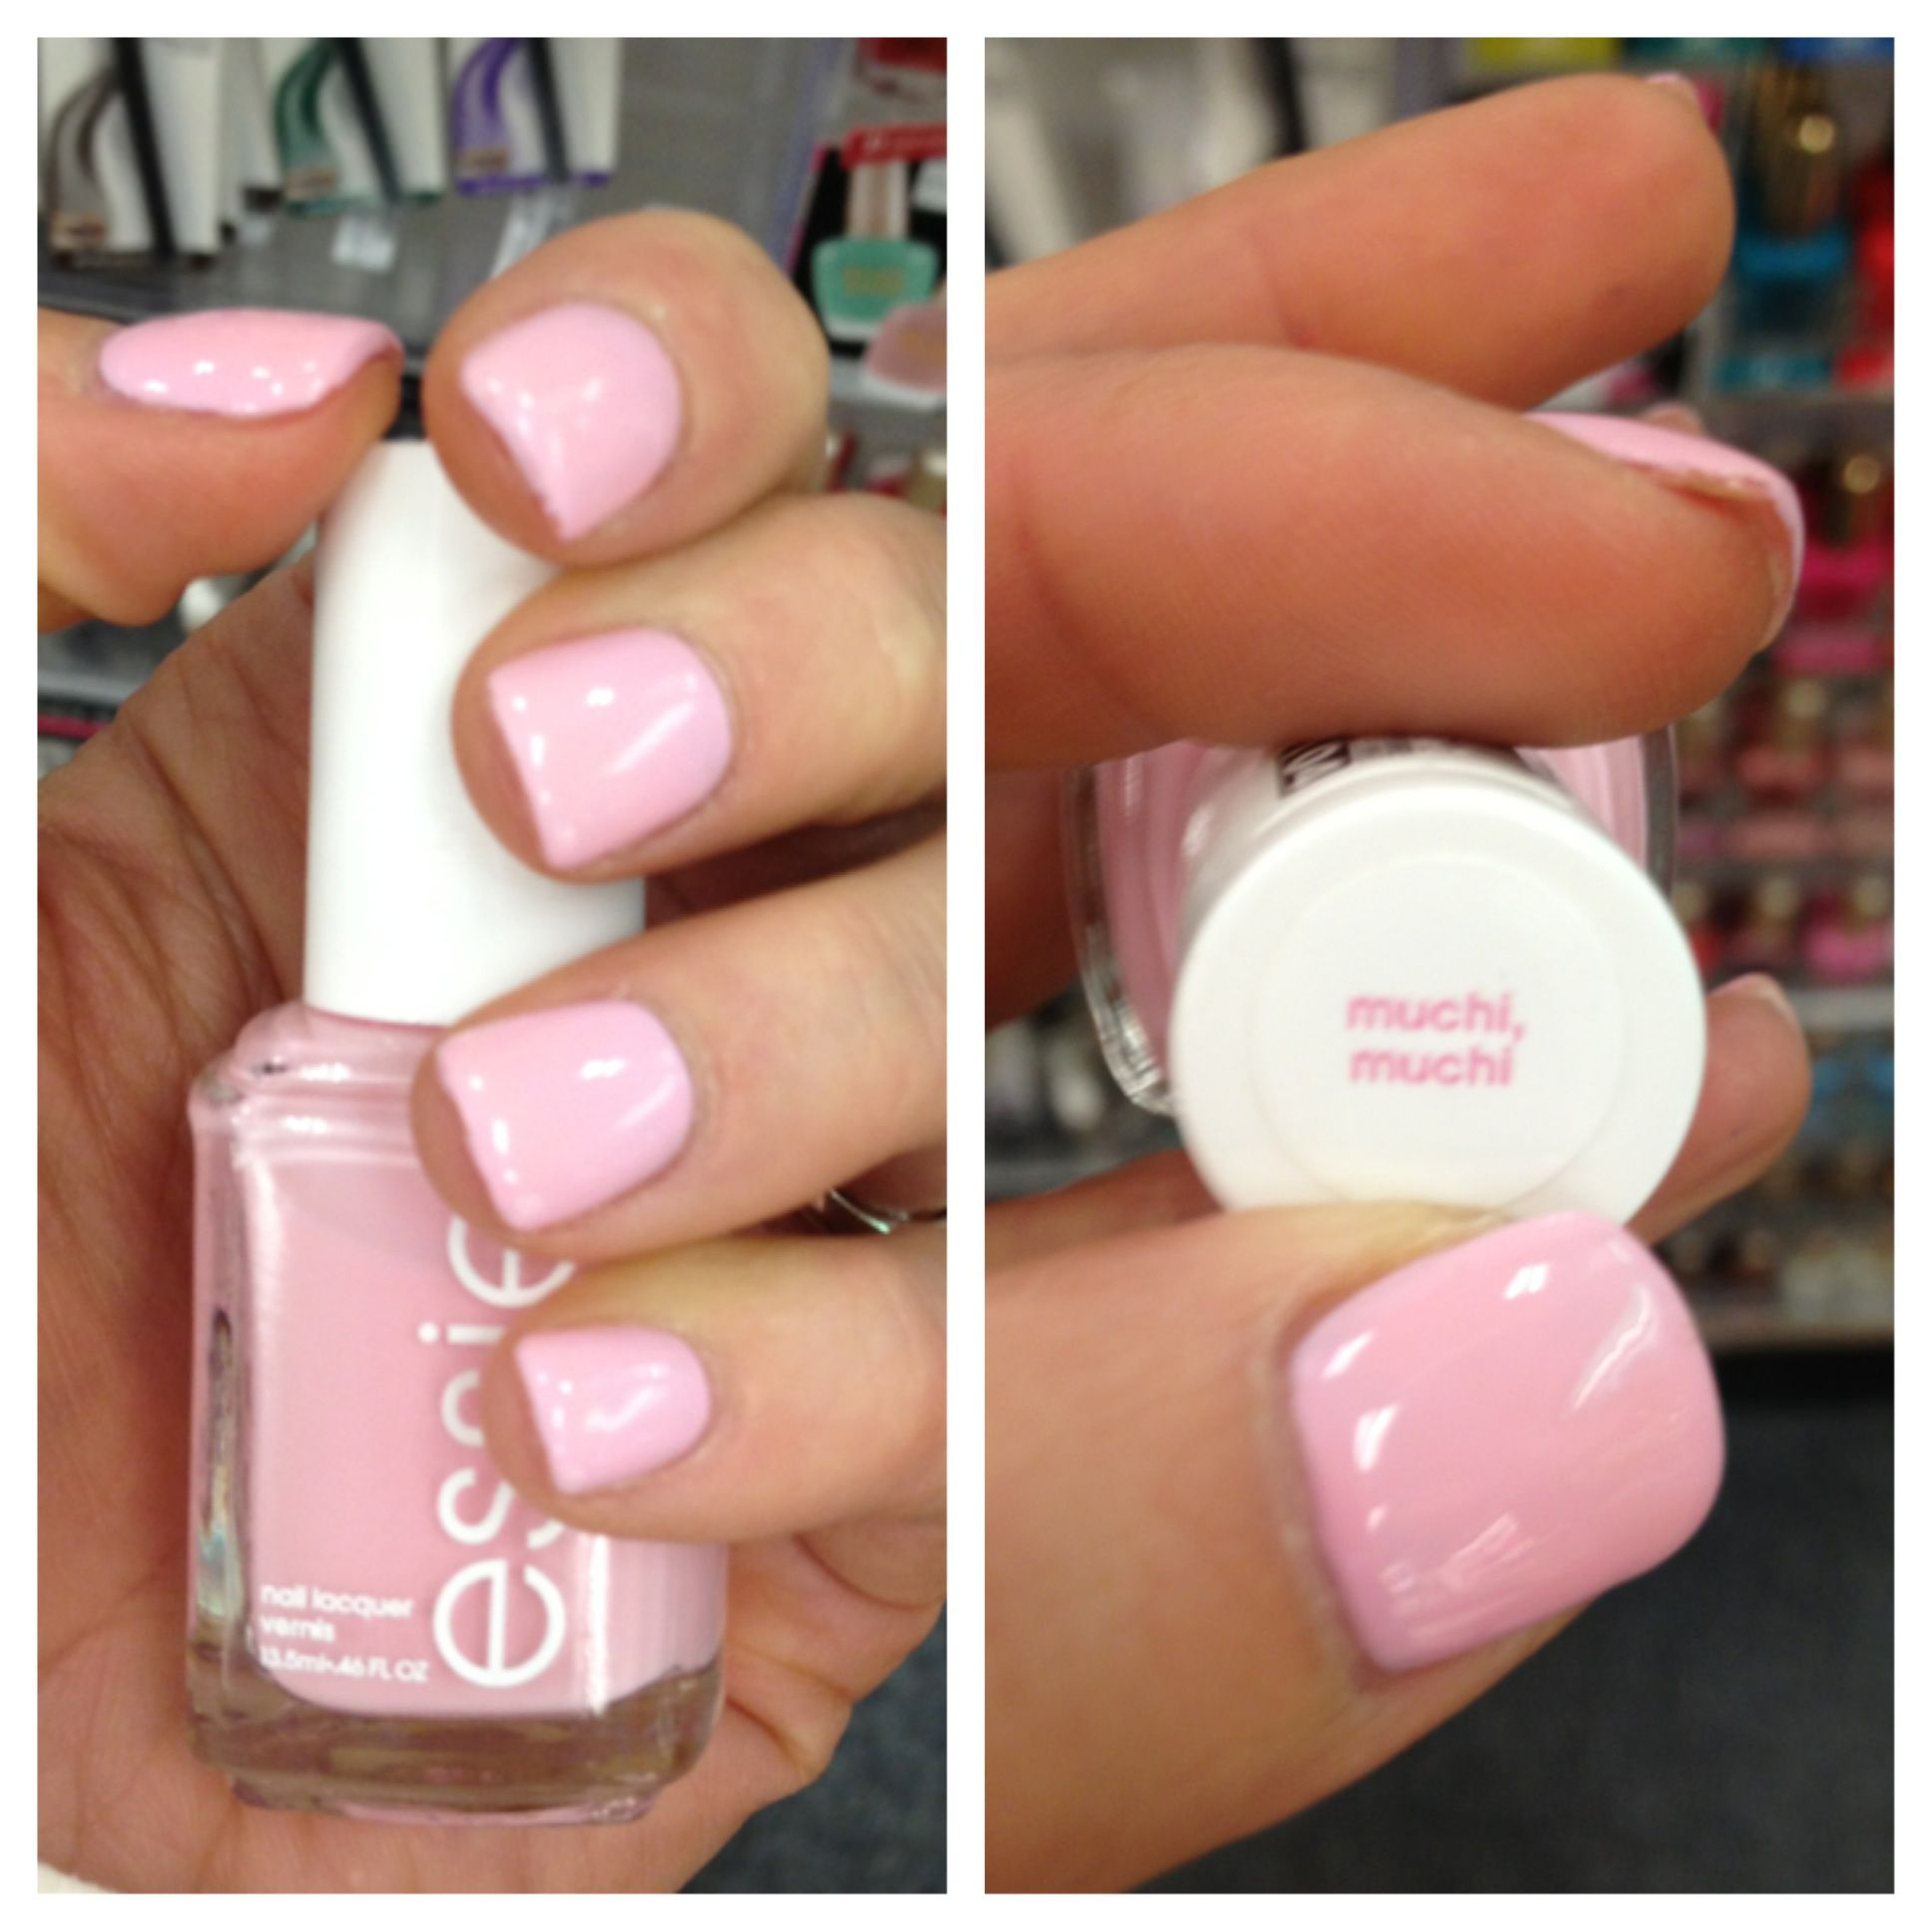 1coat OPI Mod About You + 2coats Essie Muchi Muchi = #pinkperfection #chicnails